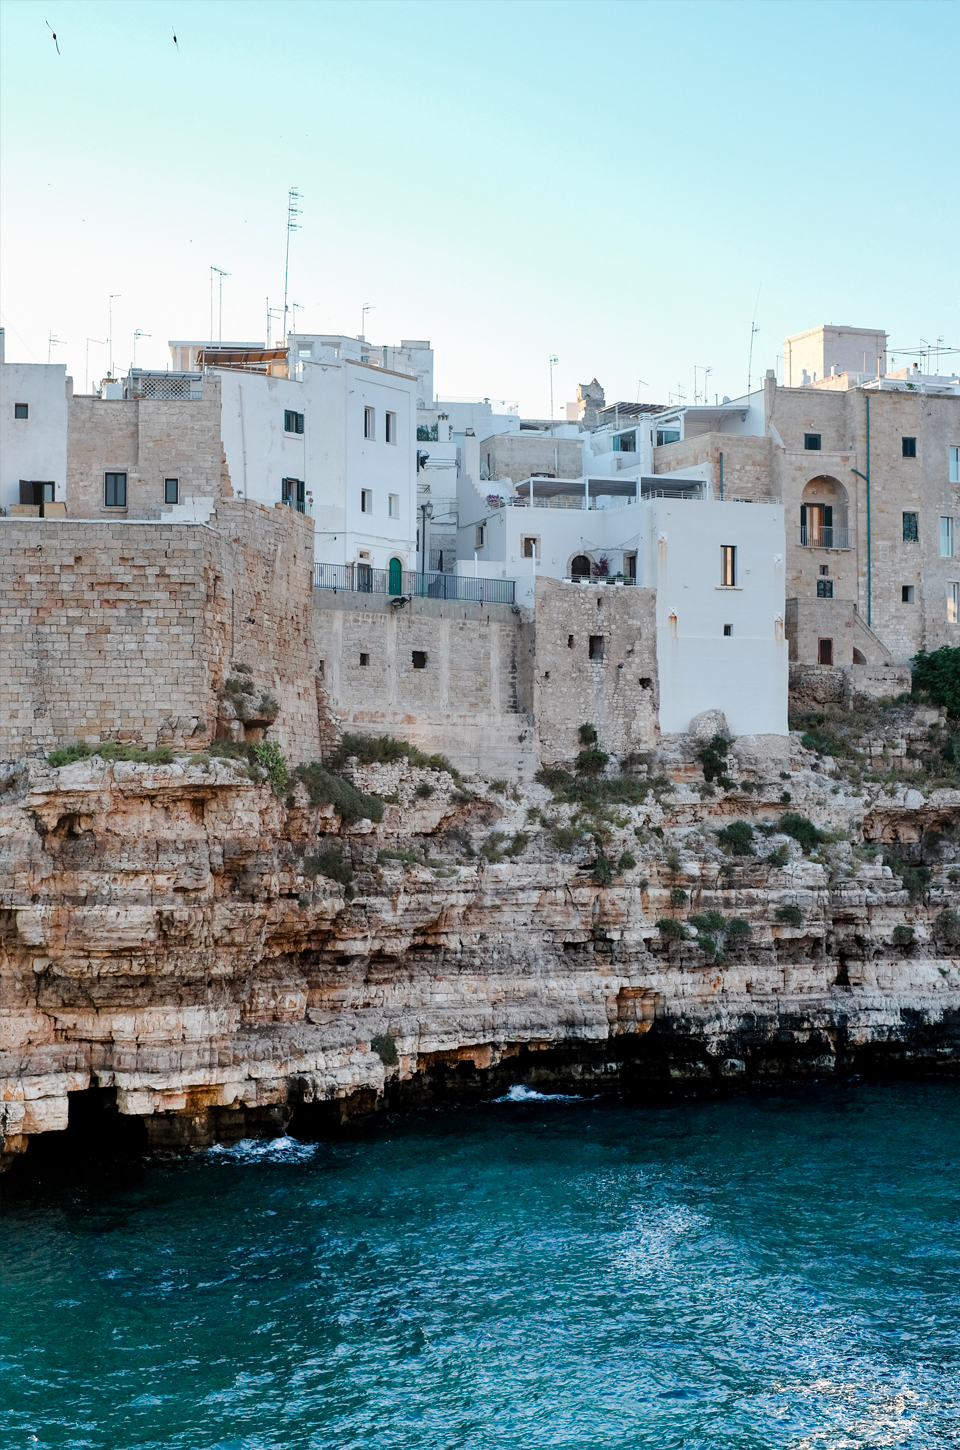 View of aquamarea hotel on the cliffs in Polignano